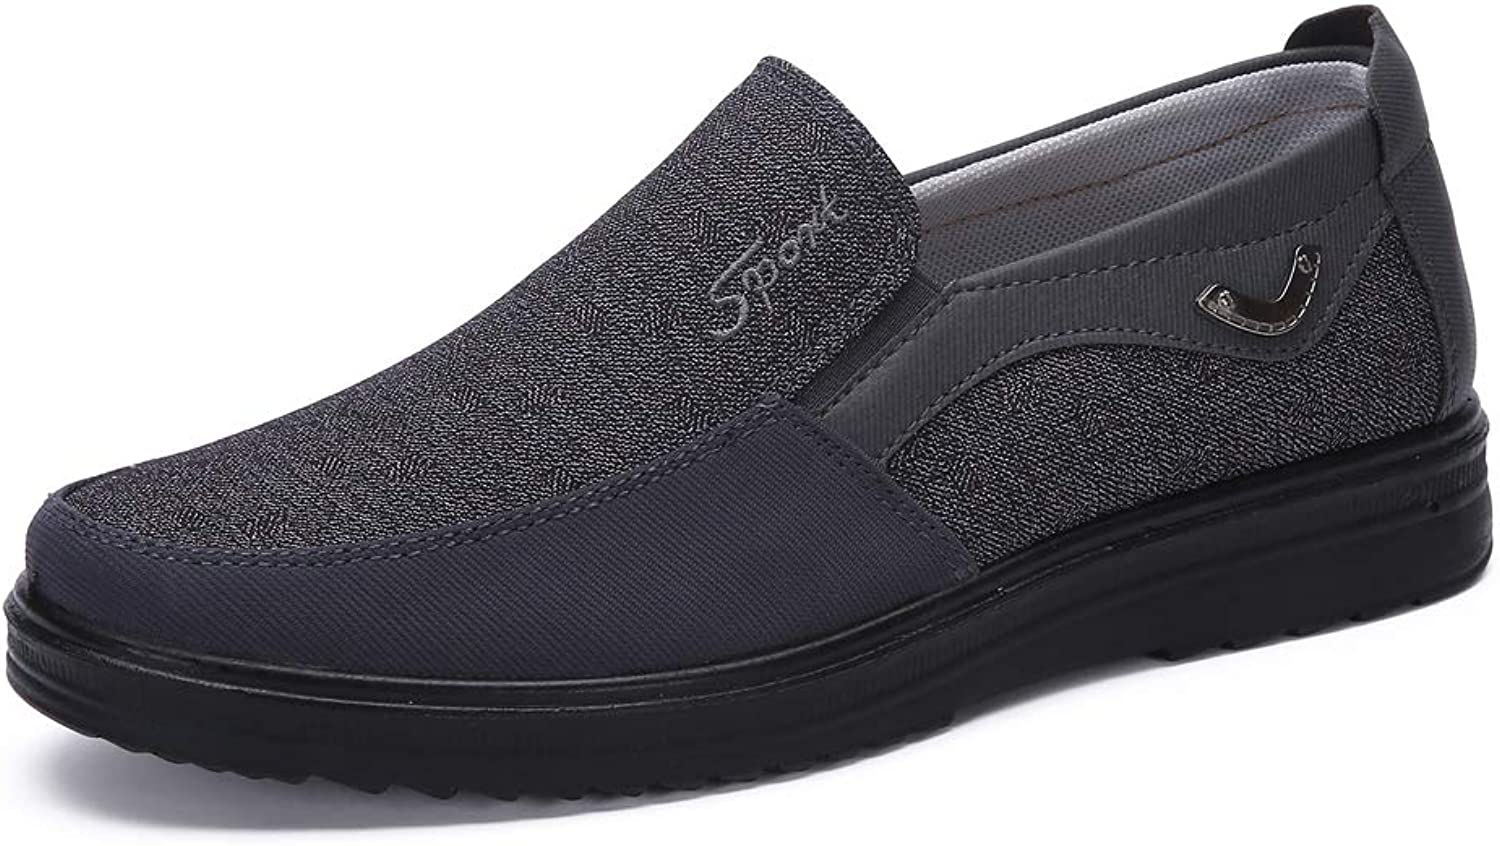 Asif Asif Asif Mans Mocasins Penny Loafers Slip -on Casual Drive Boat Formal Business Dress skor  Det finns fler märken av högkvalitativa varor